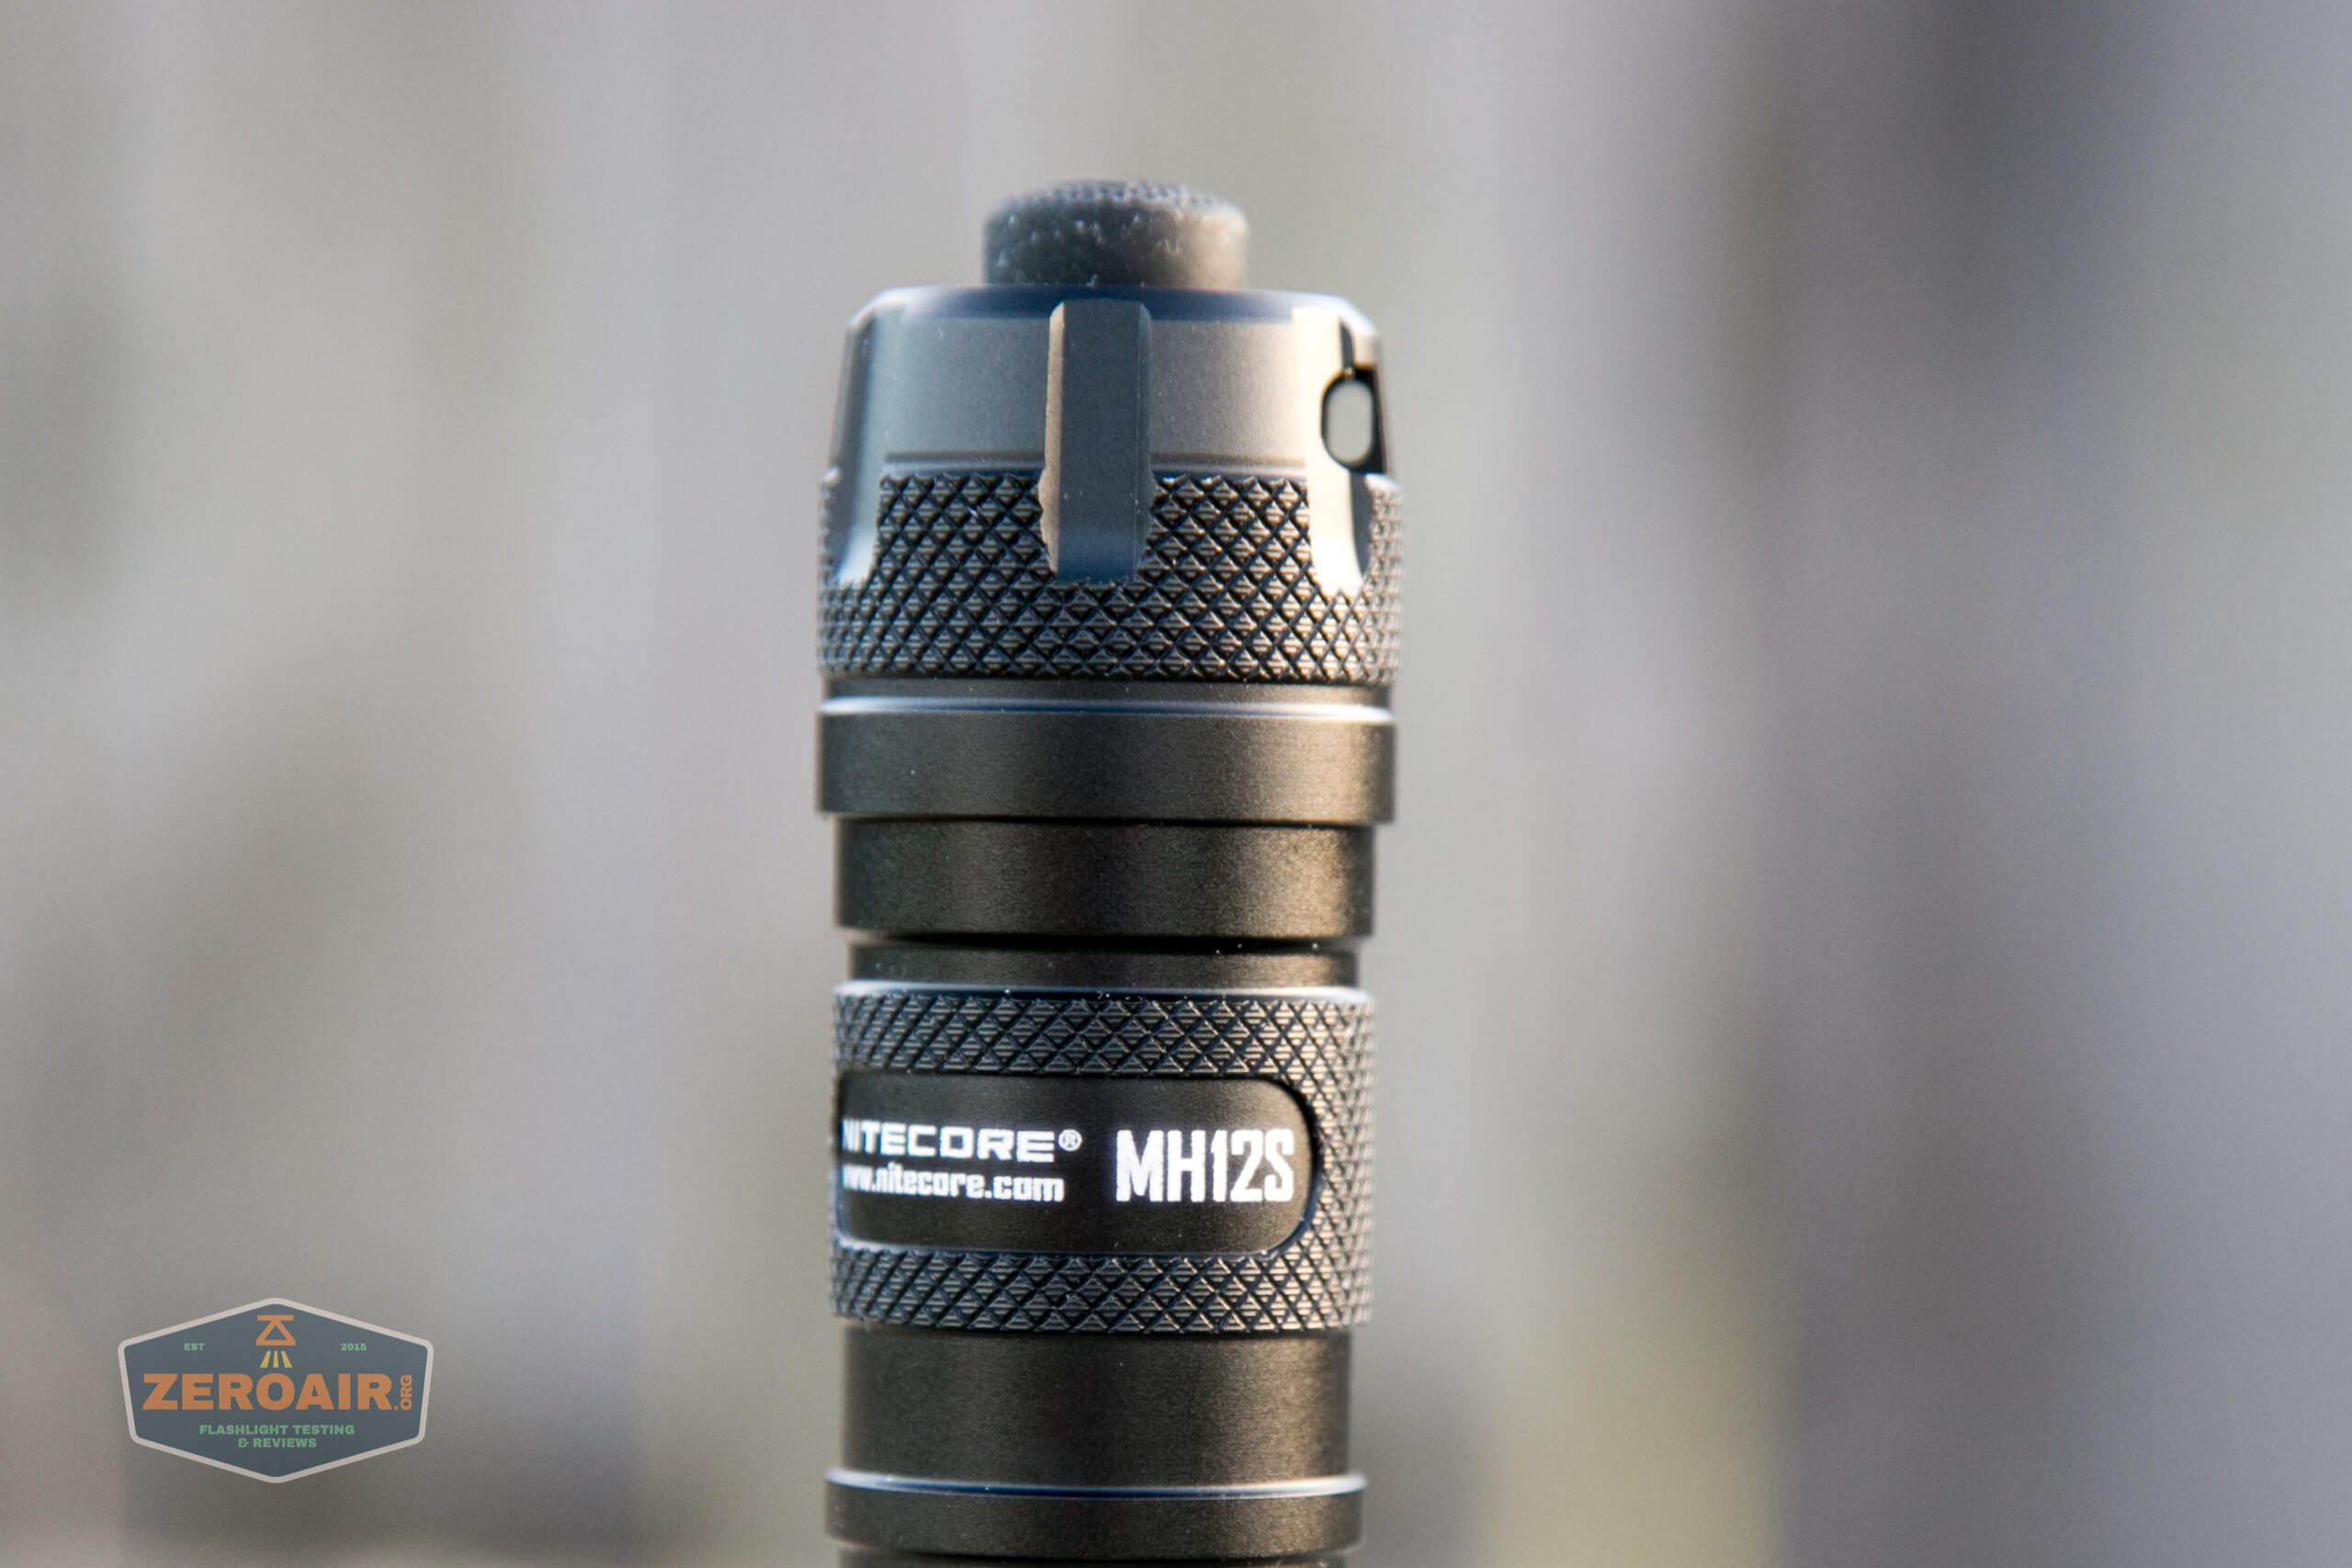 nitecore mh12s tactical flashlights showing tailcap knurling